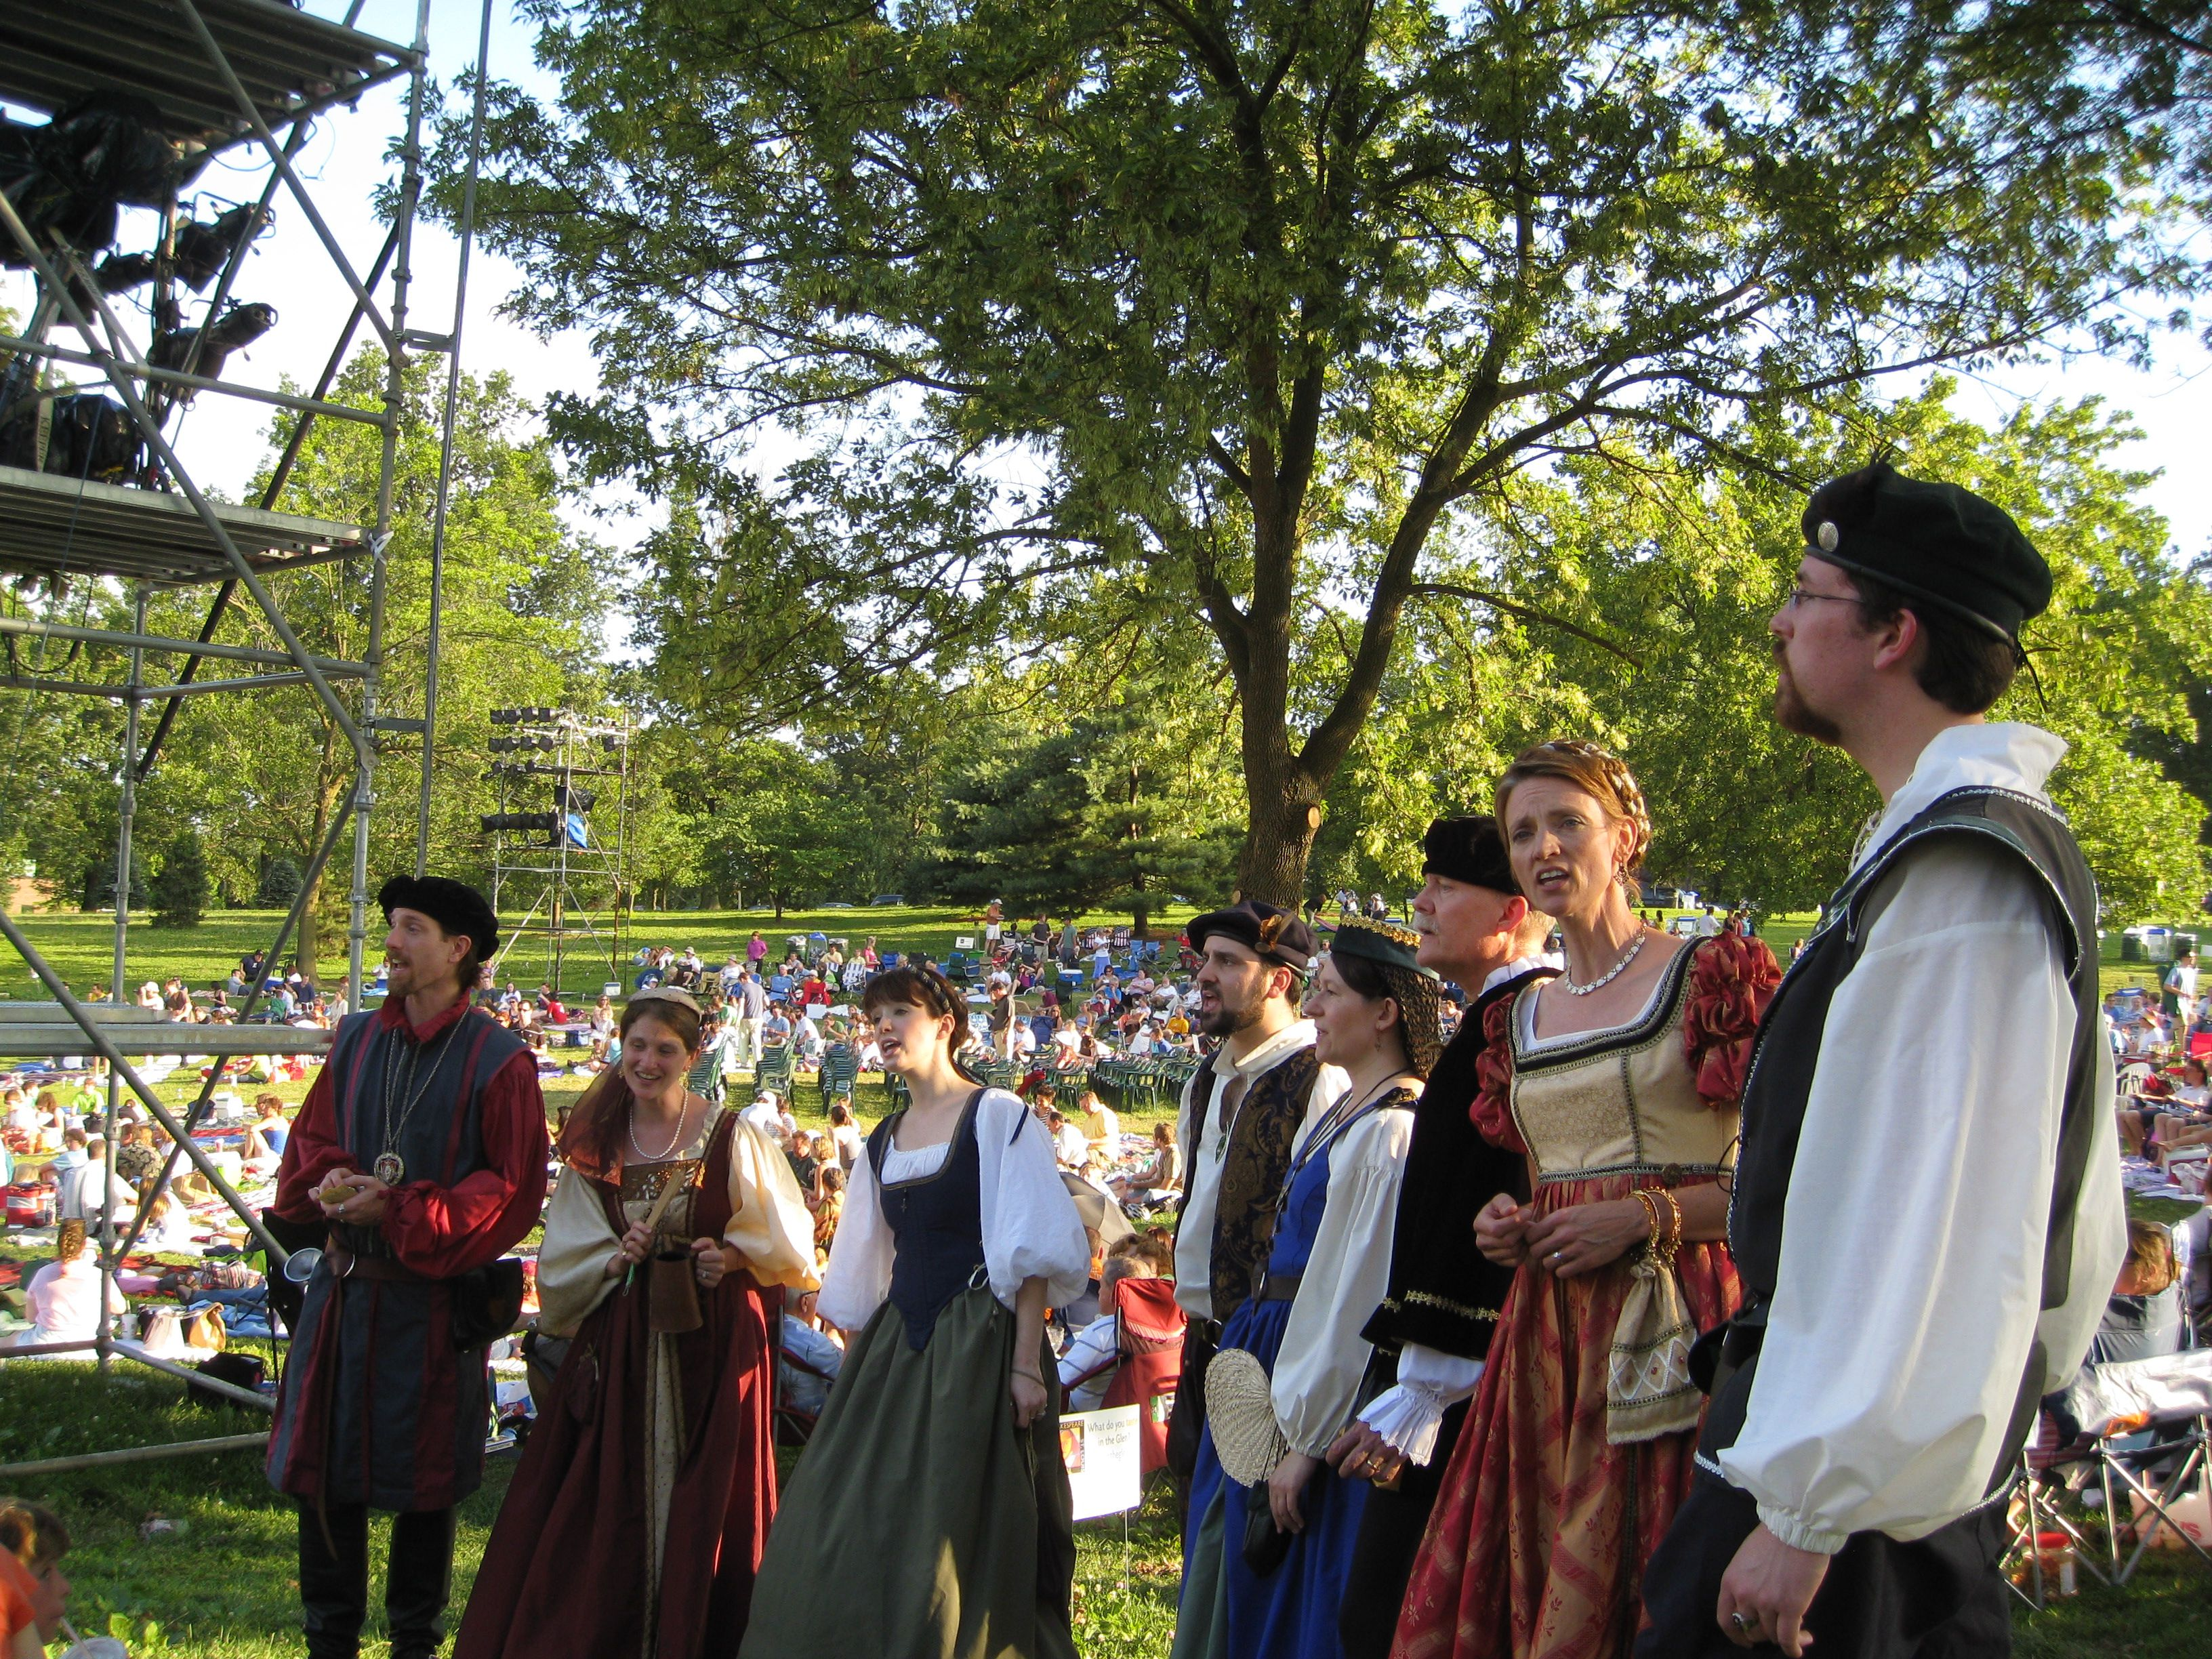 Actors at Shakespeare Festival in Forest Park